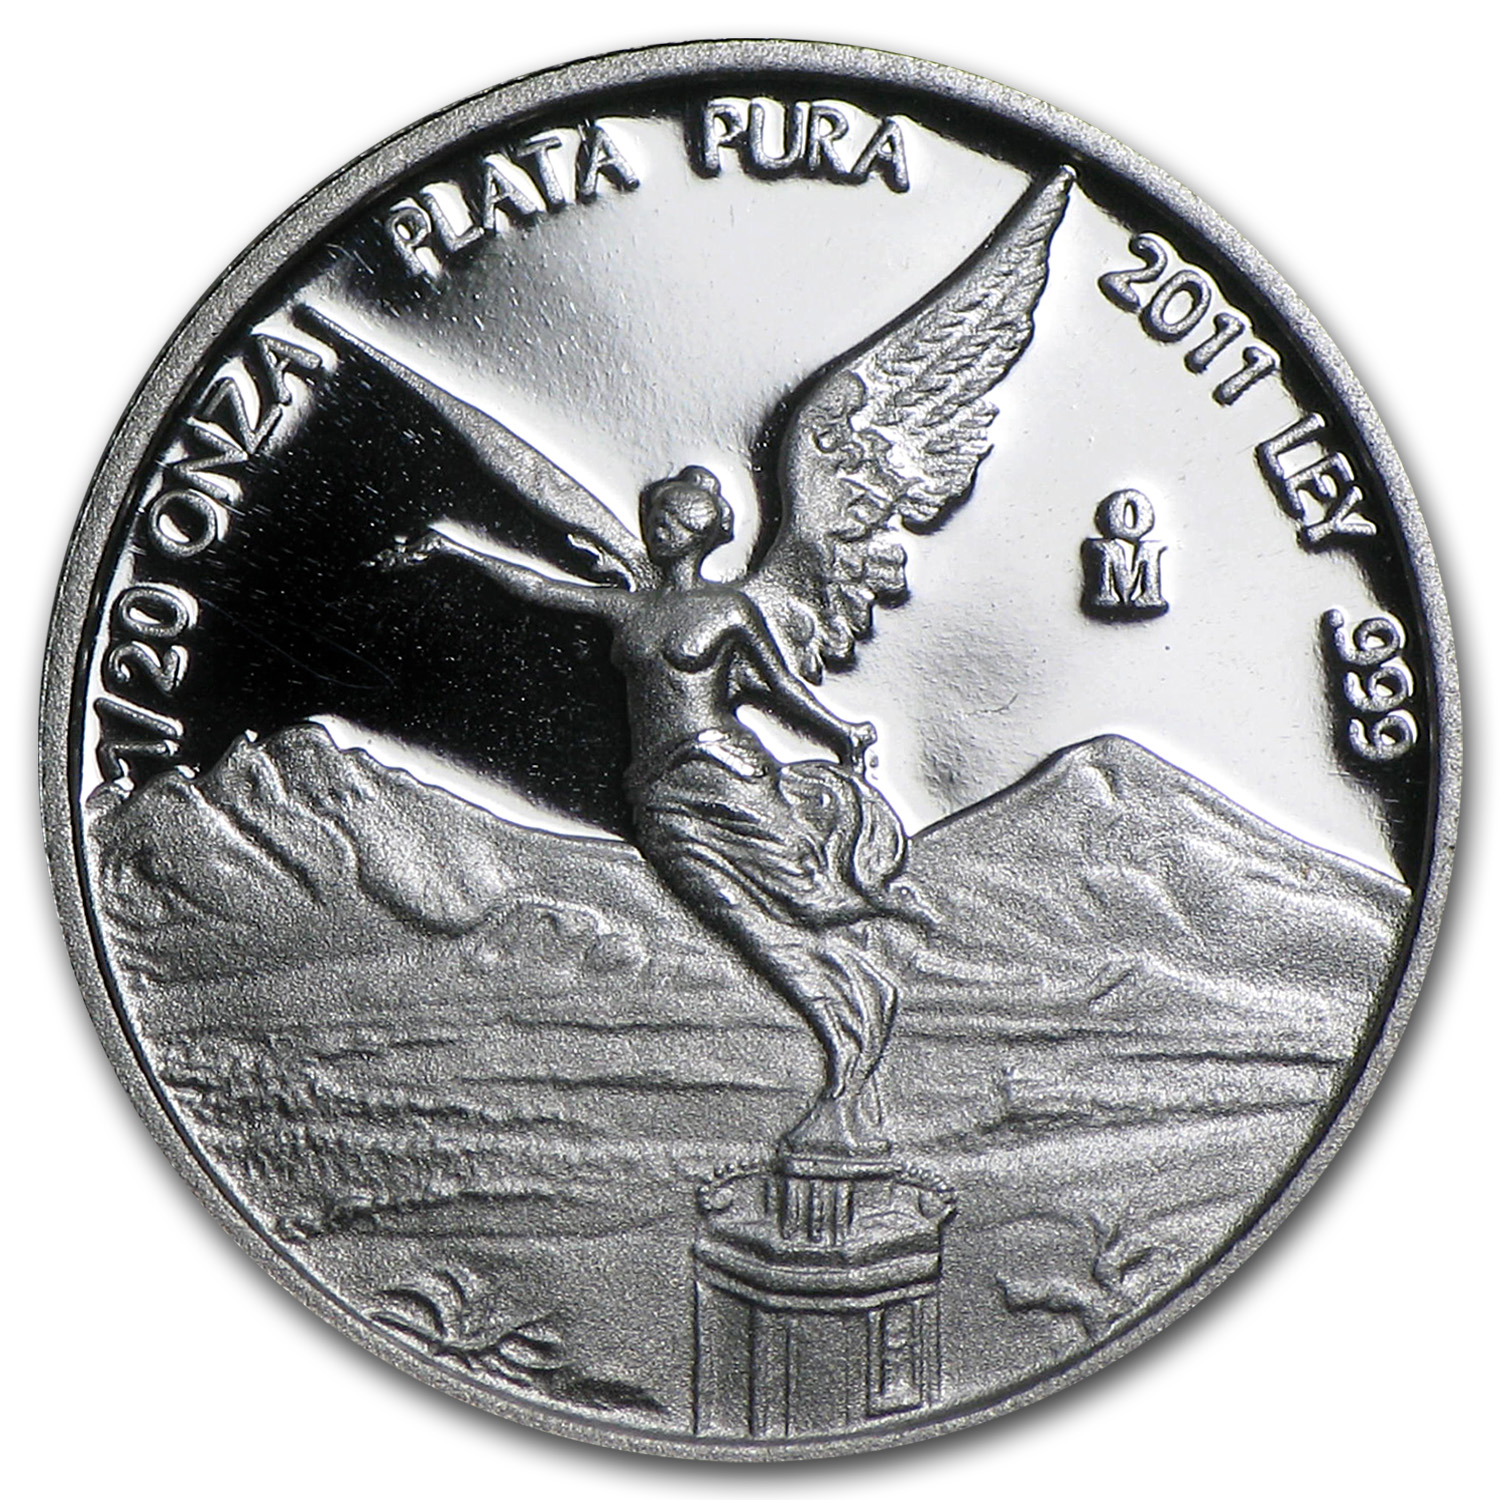 2011 Mexico 1/20 oz Silver Libertad Proof (In Capsule)